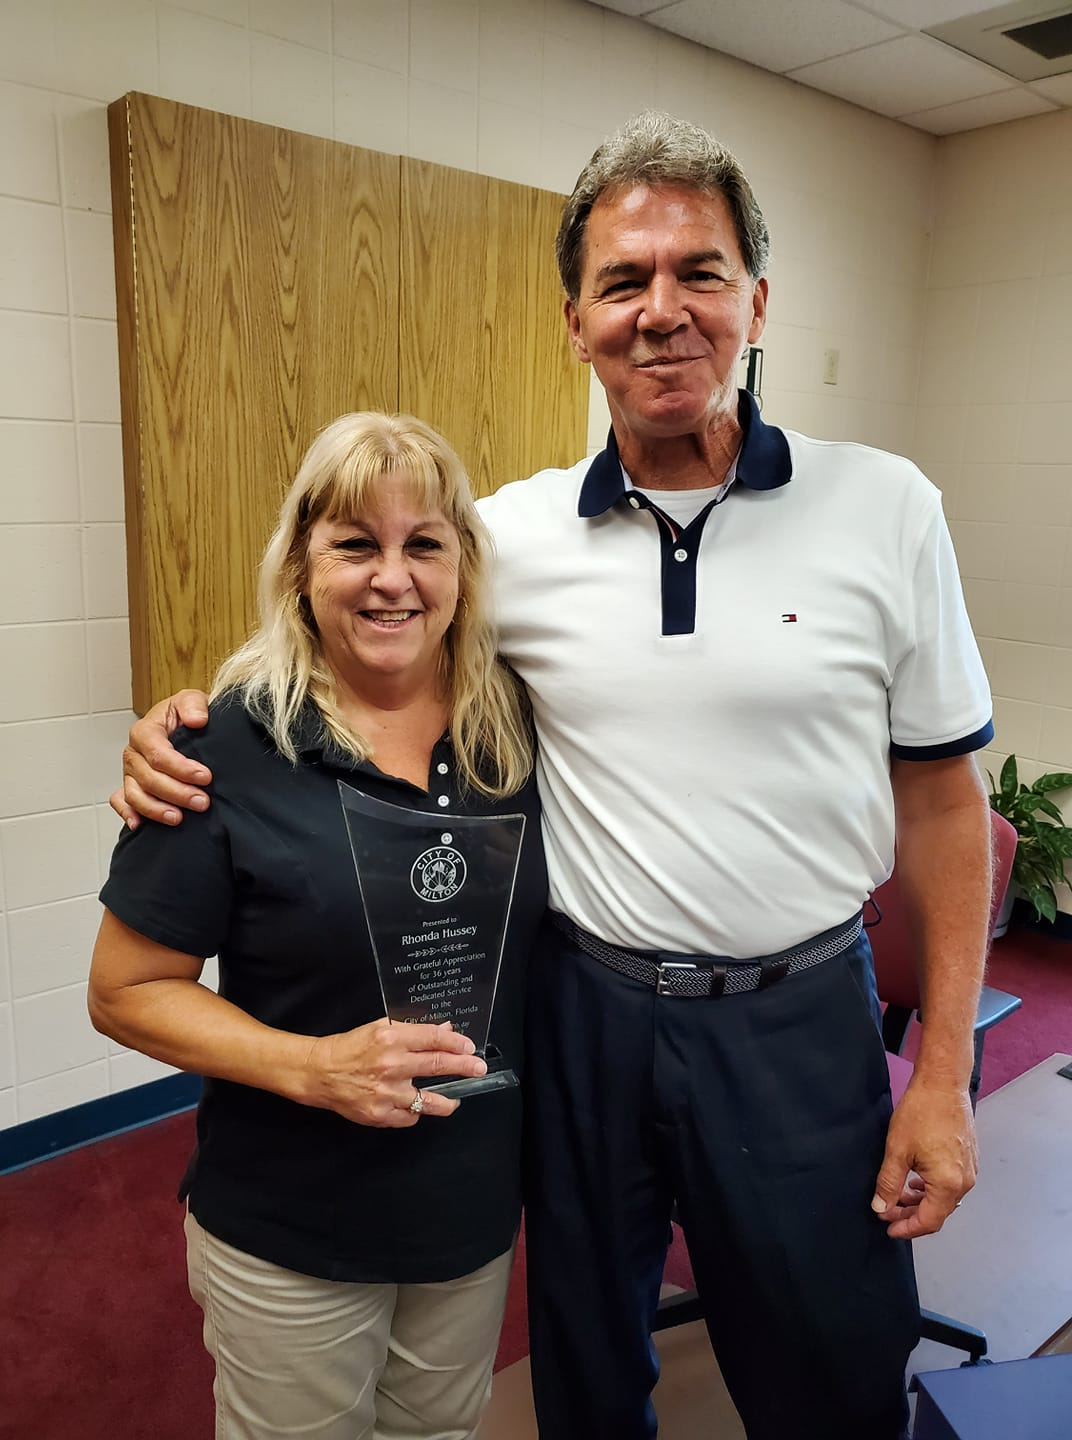 Rhonda Hussey and Randy Jorgenson city manager